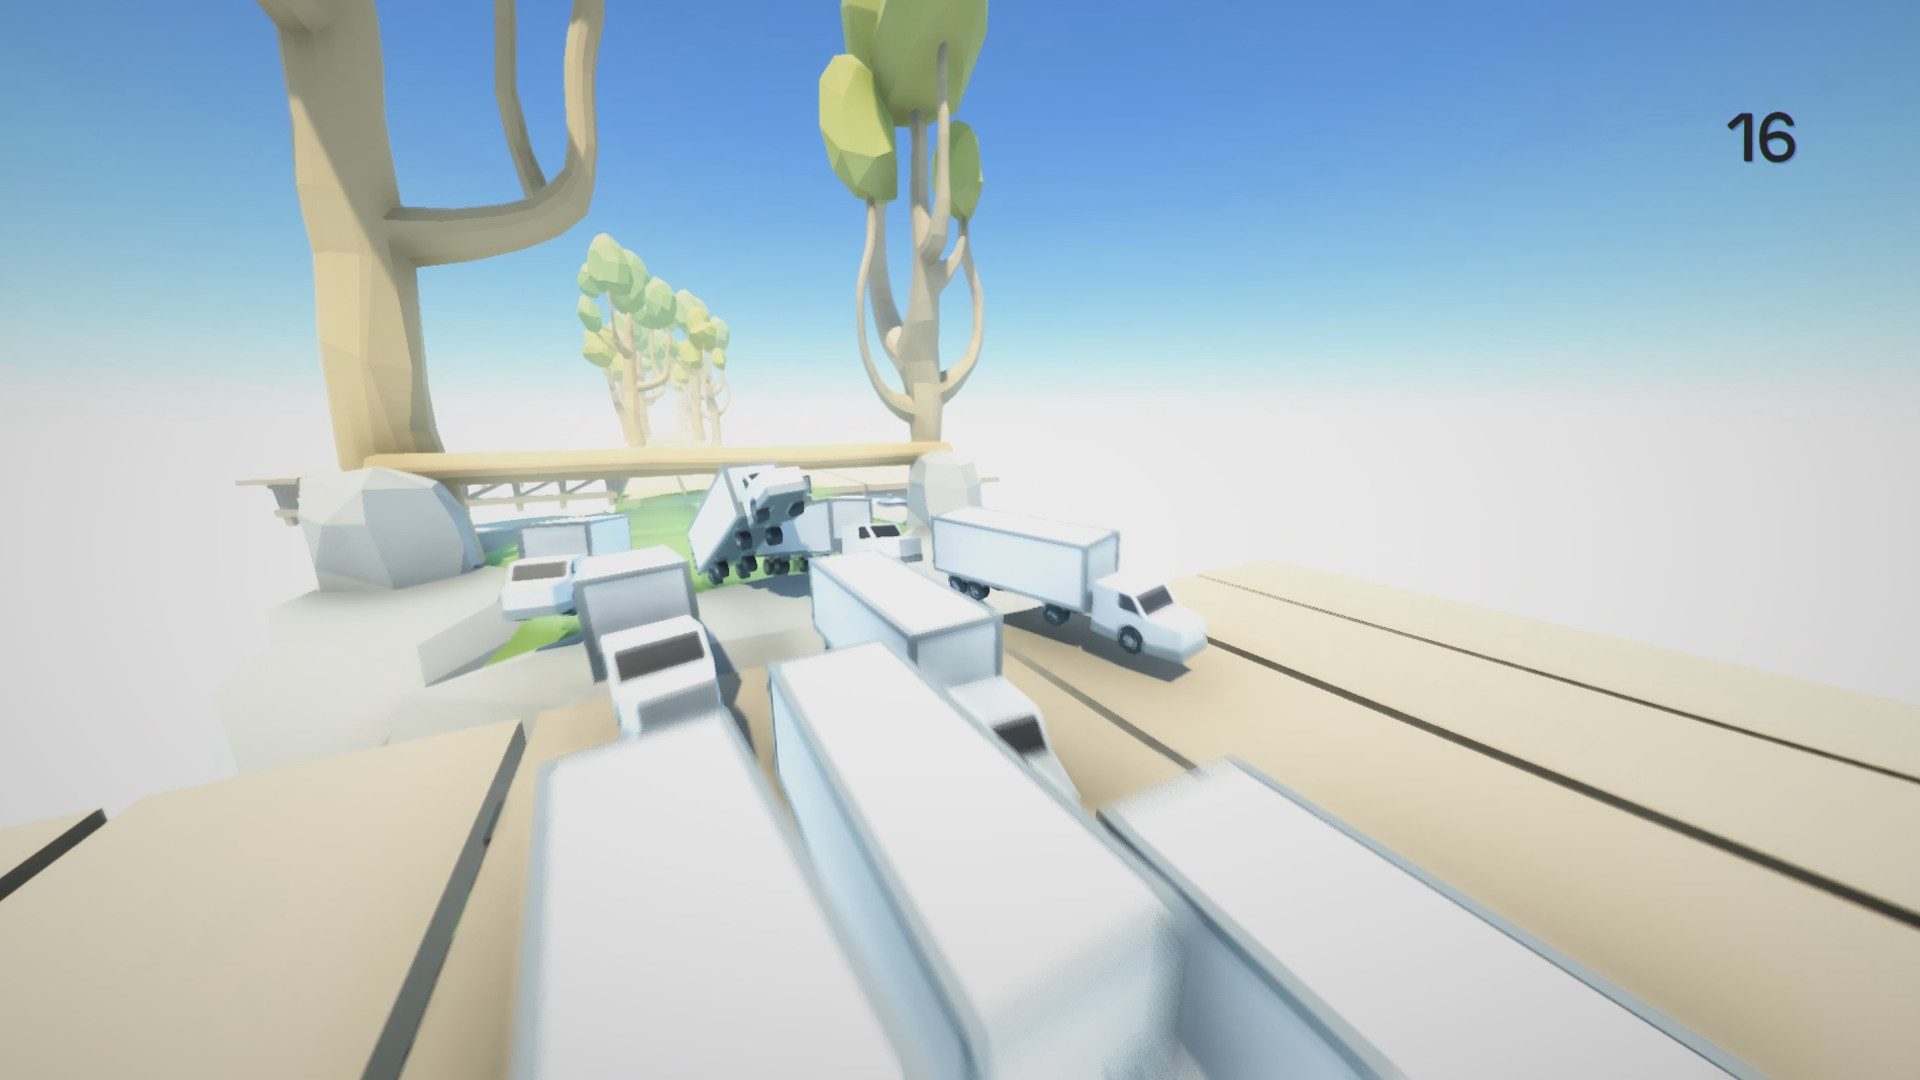 Clustertruck Screenshot 1